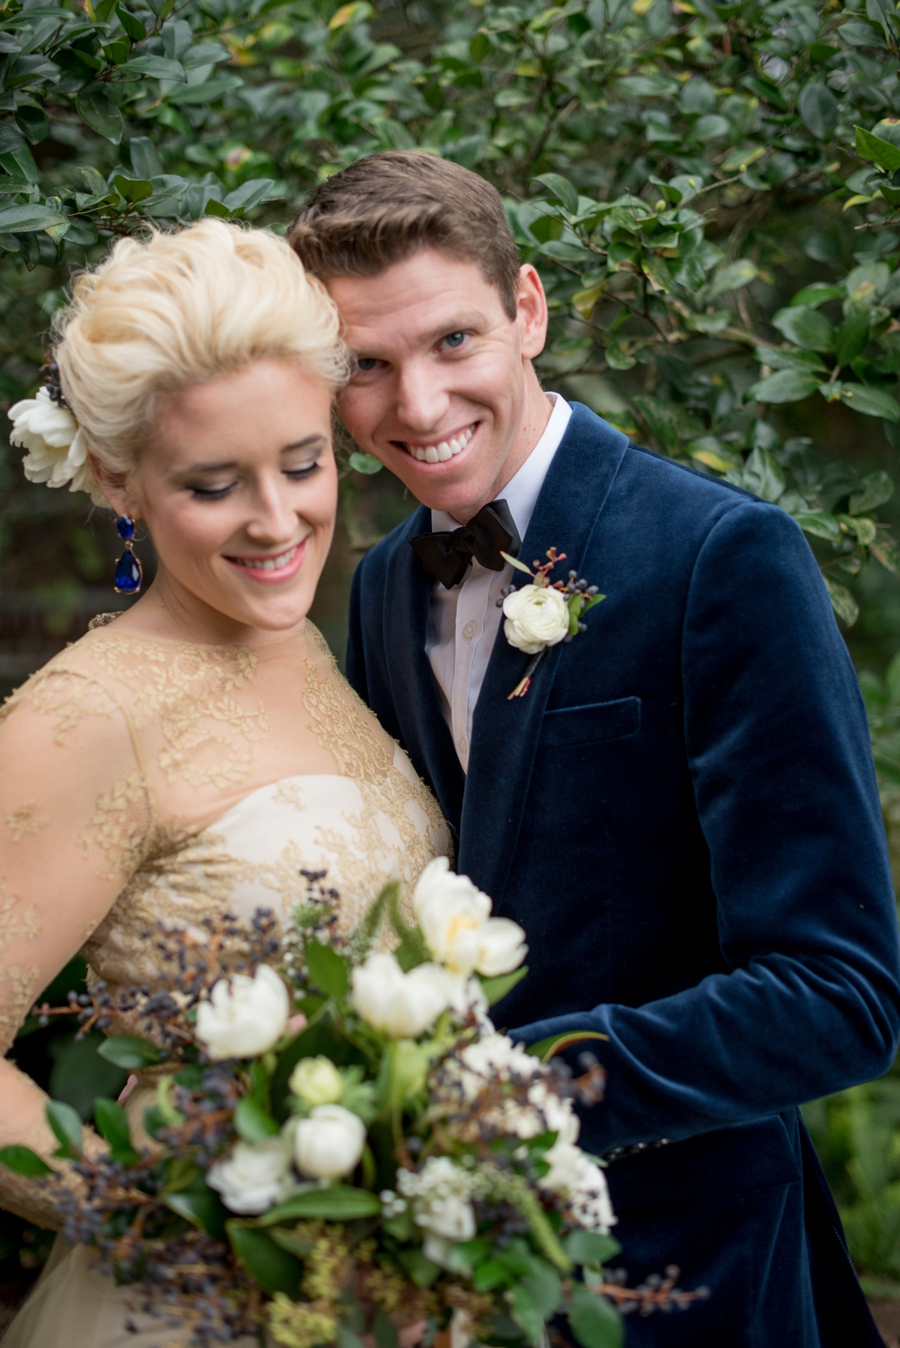 A Whimsical Woodland Inspired Vow Renewal via TheELD.com